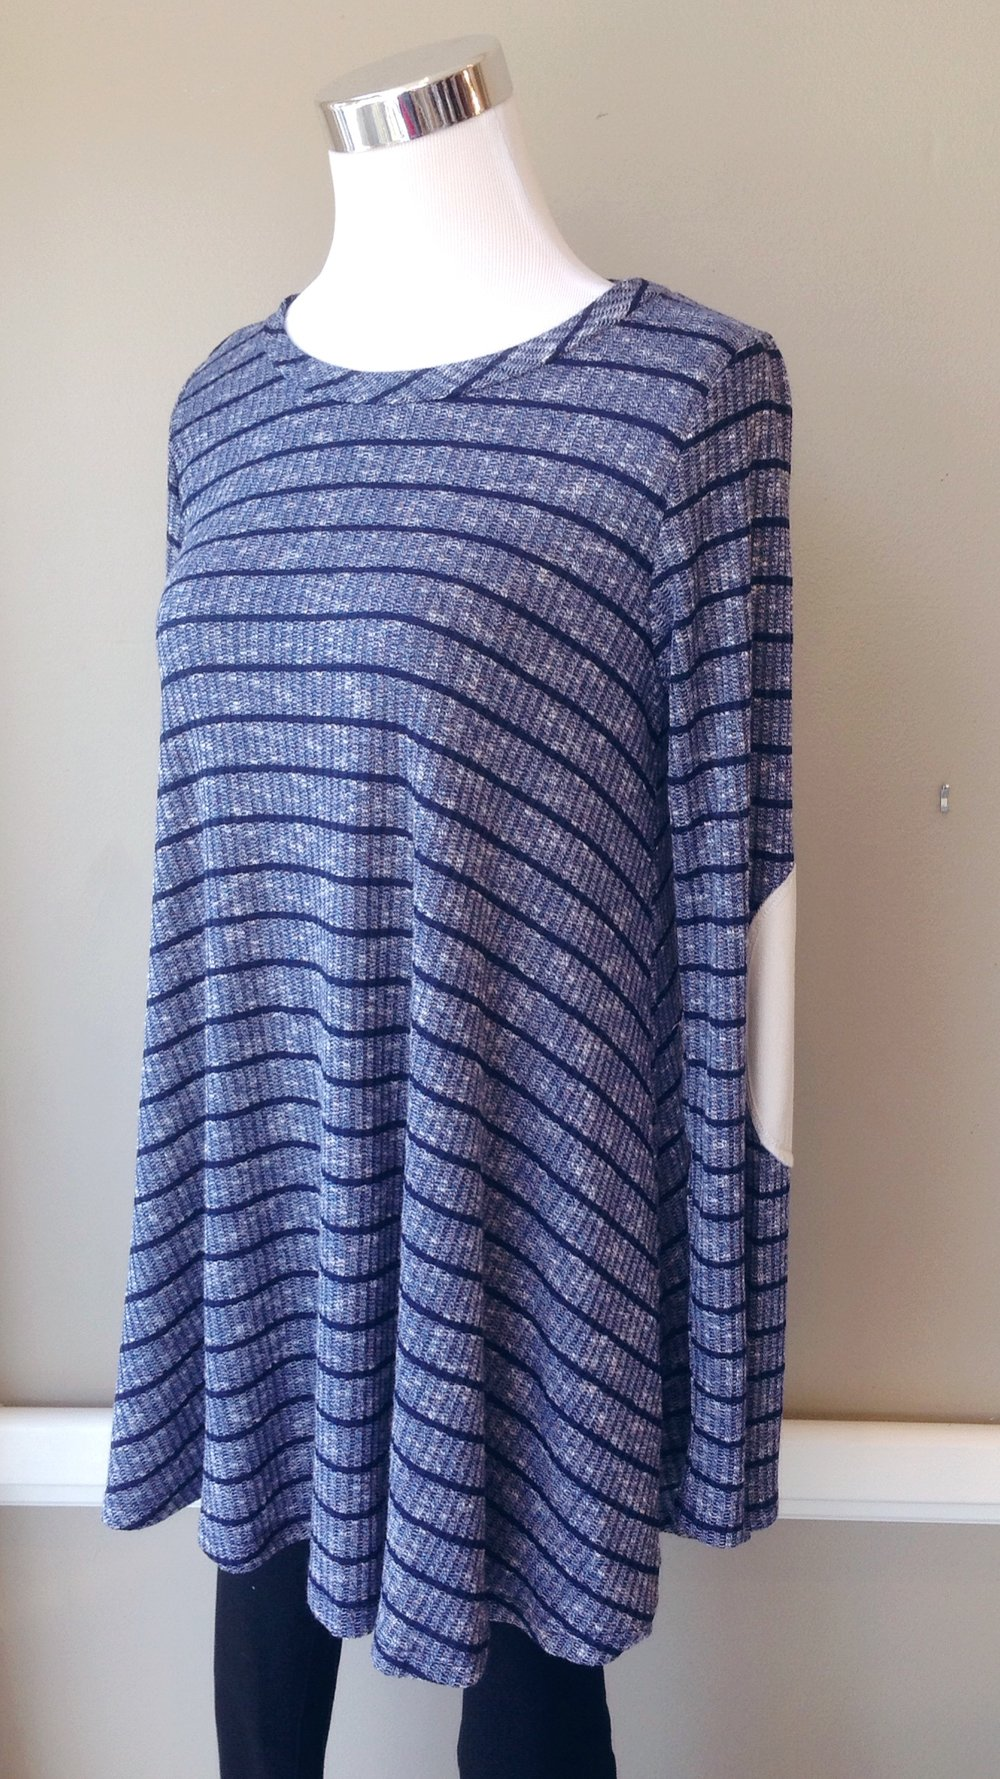 Rib knit swing top with elbow patches in heather navy stripe, $34